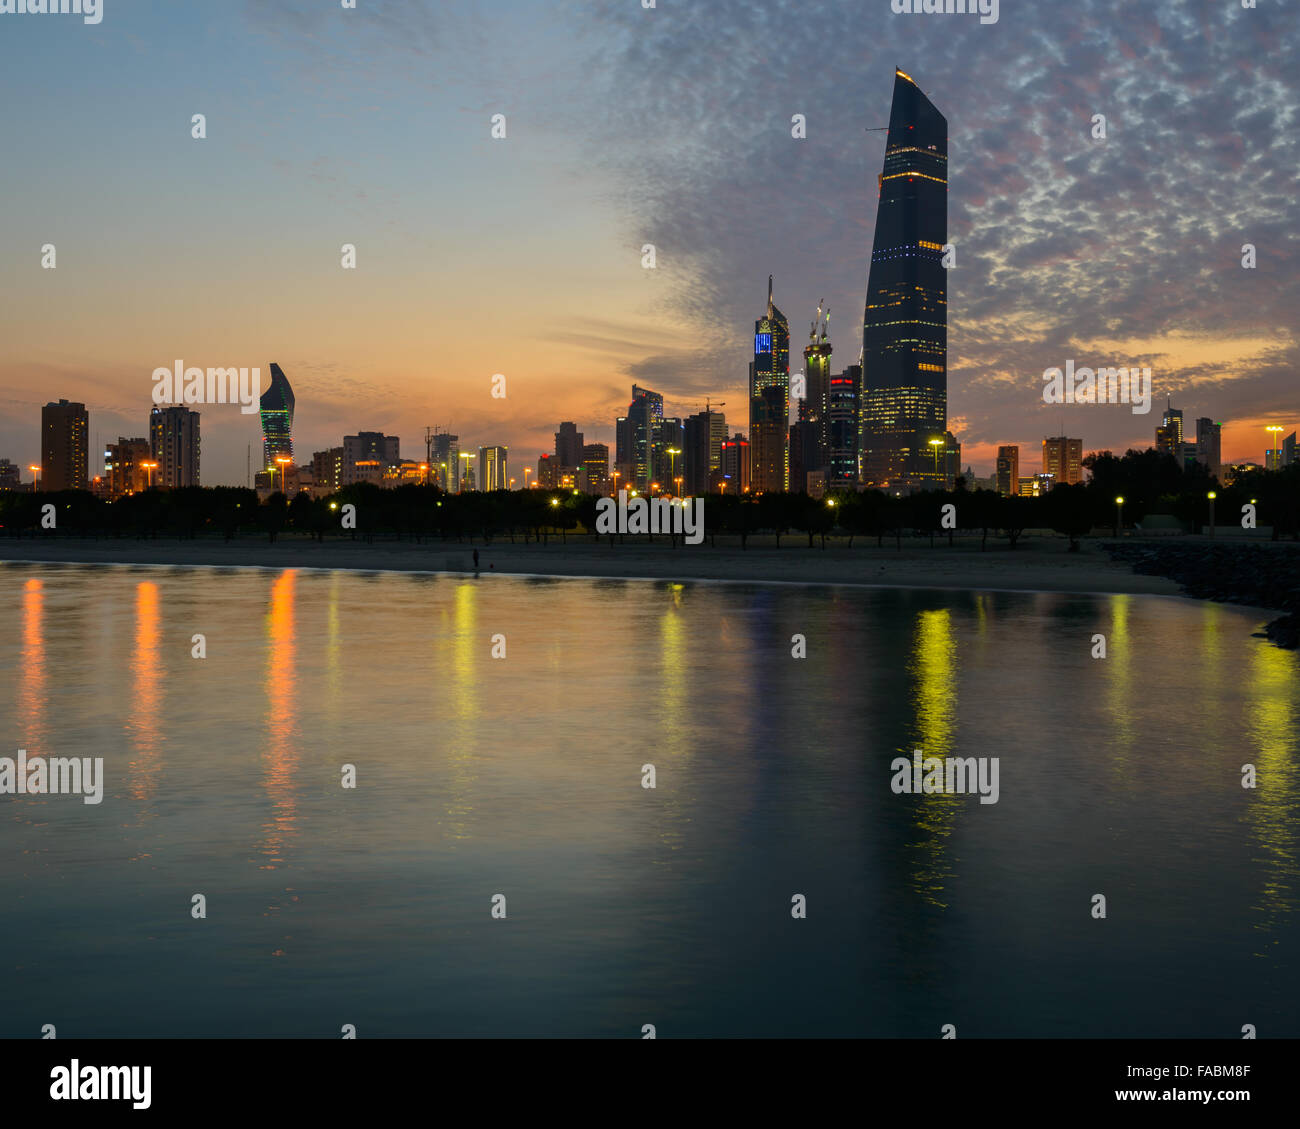 Kuwait City skyline at sunset, featuring Al-Hamra - Stock Image